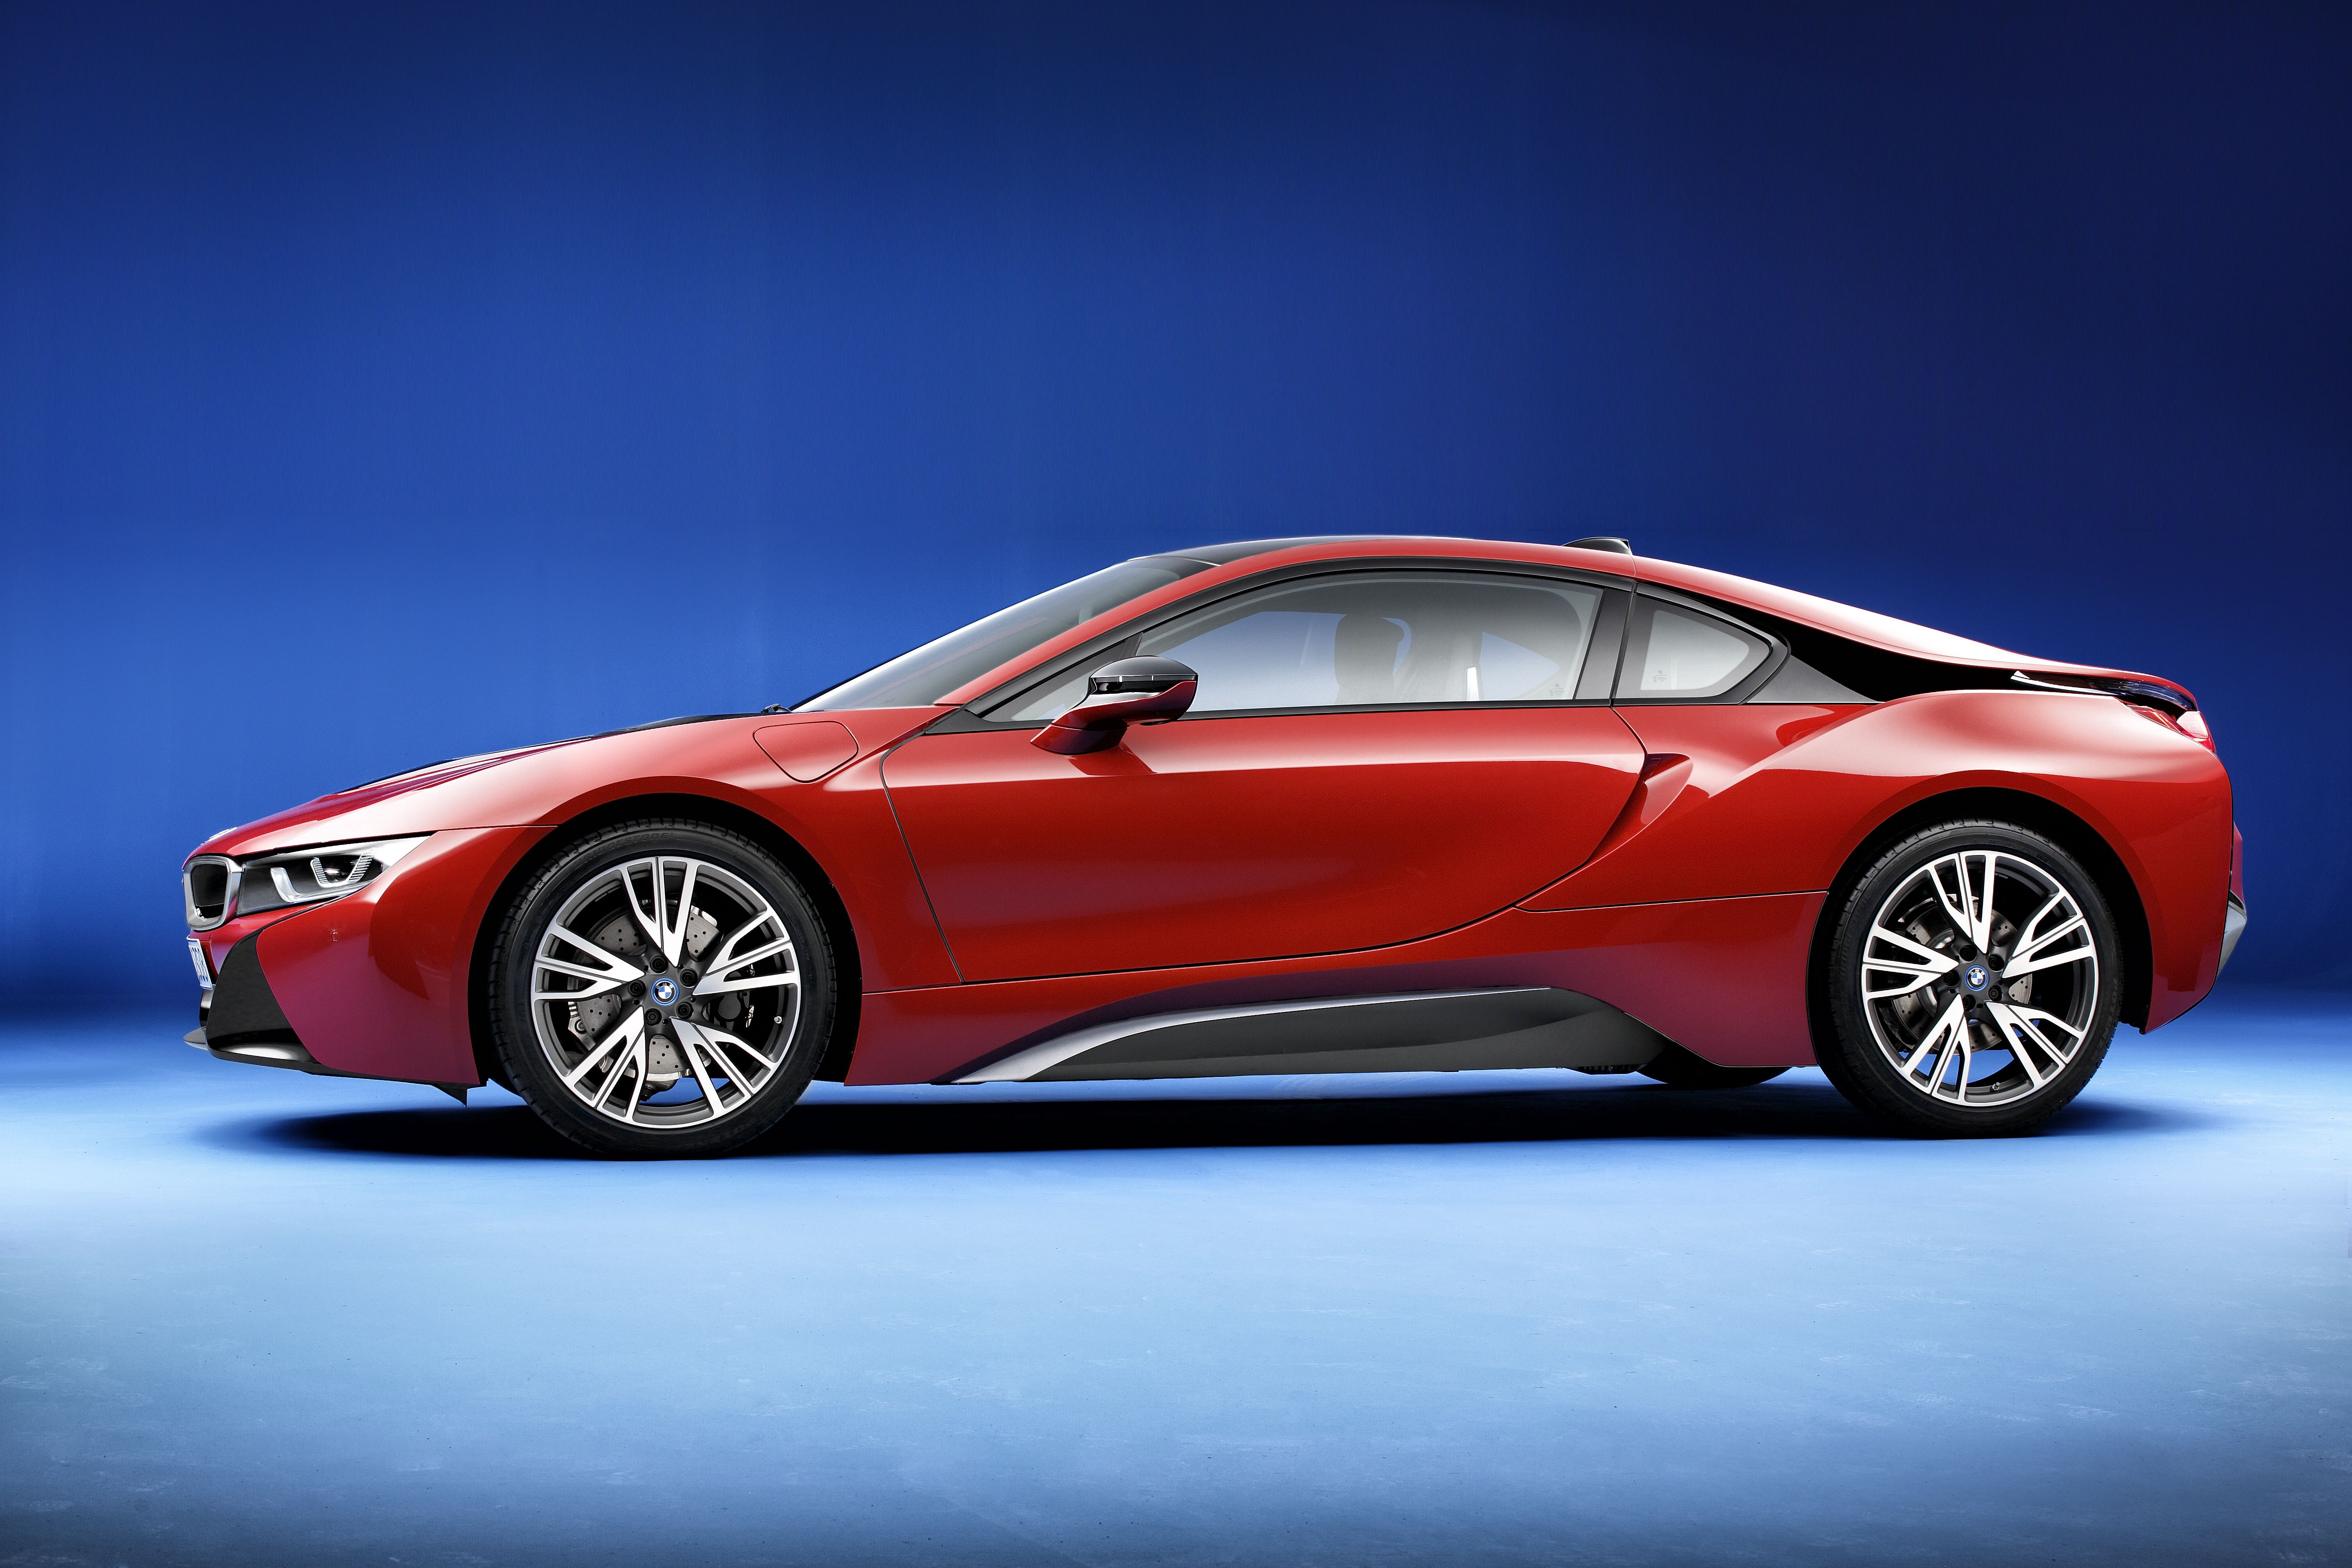 Bmw I8 Edrive Coupe Protonic Red Edition Burn Electric